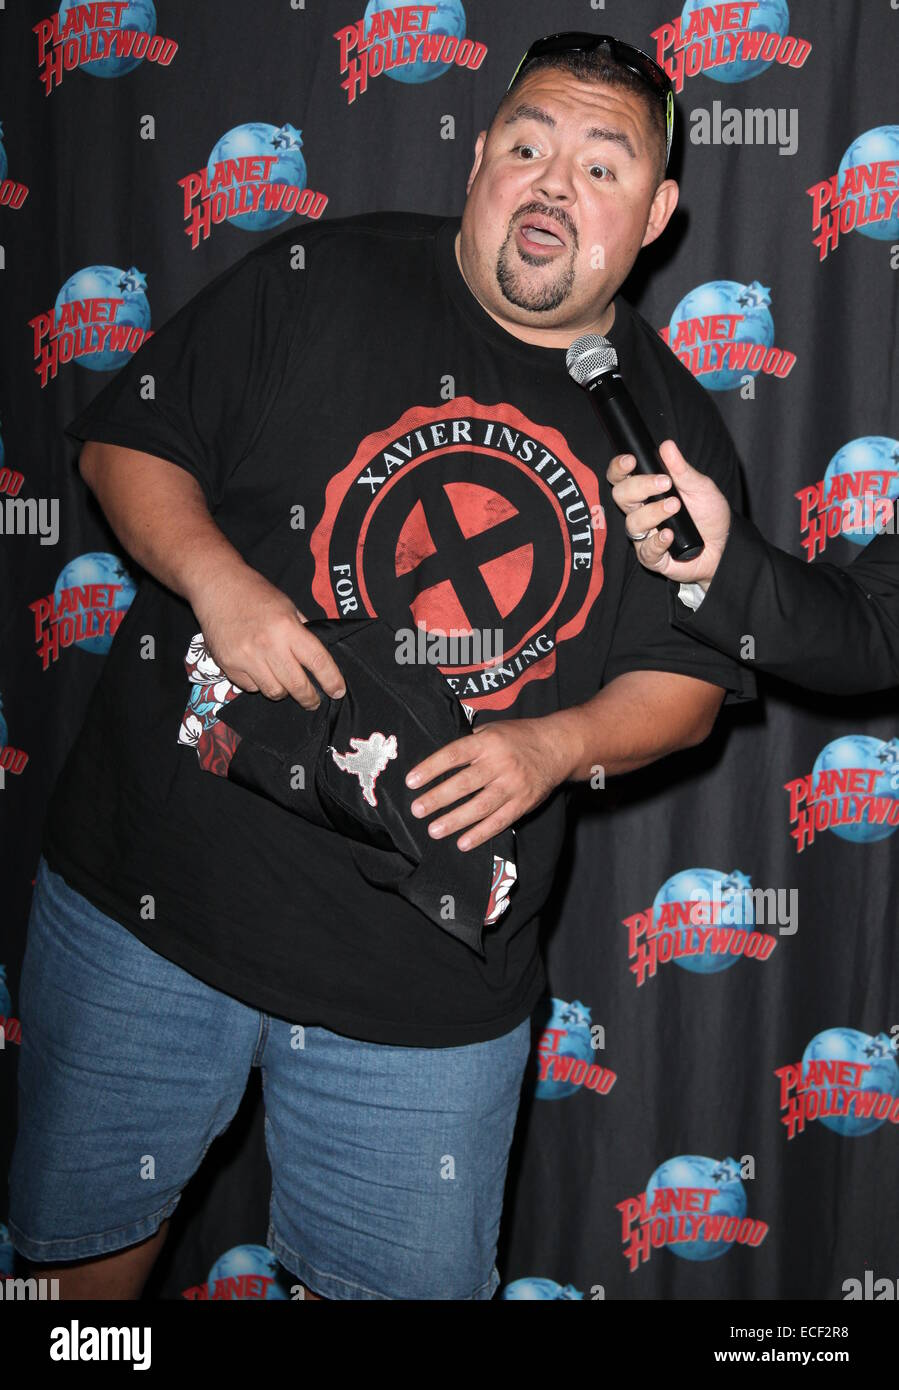 Gabriel Fluffy Iglesias Promotes His Upcoming Comedy Concert Movie